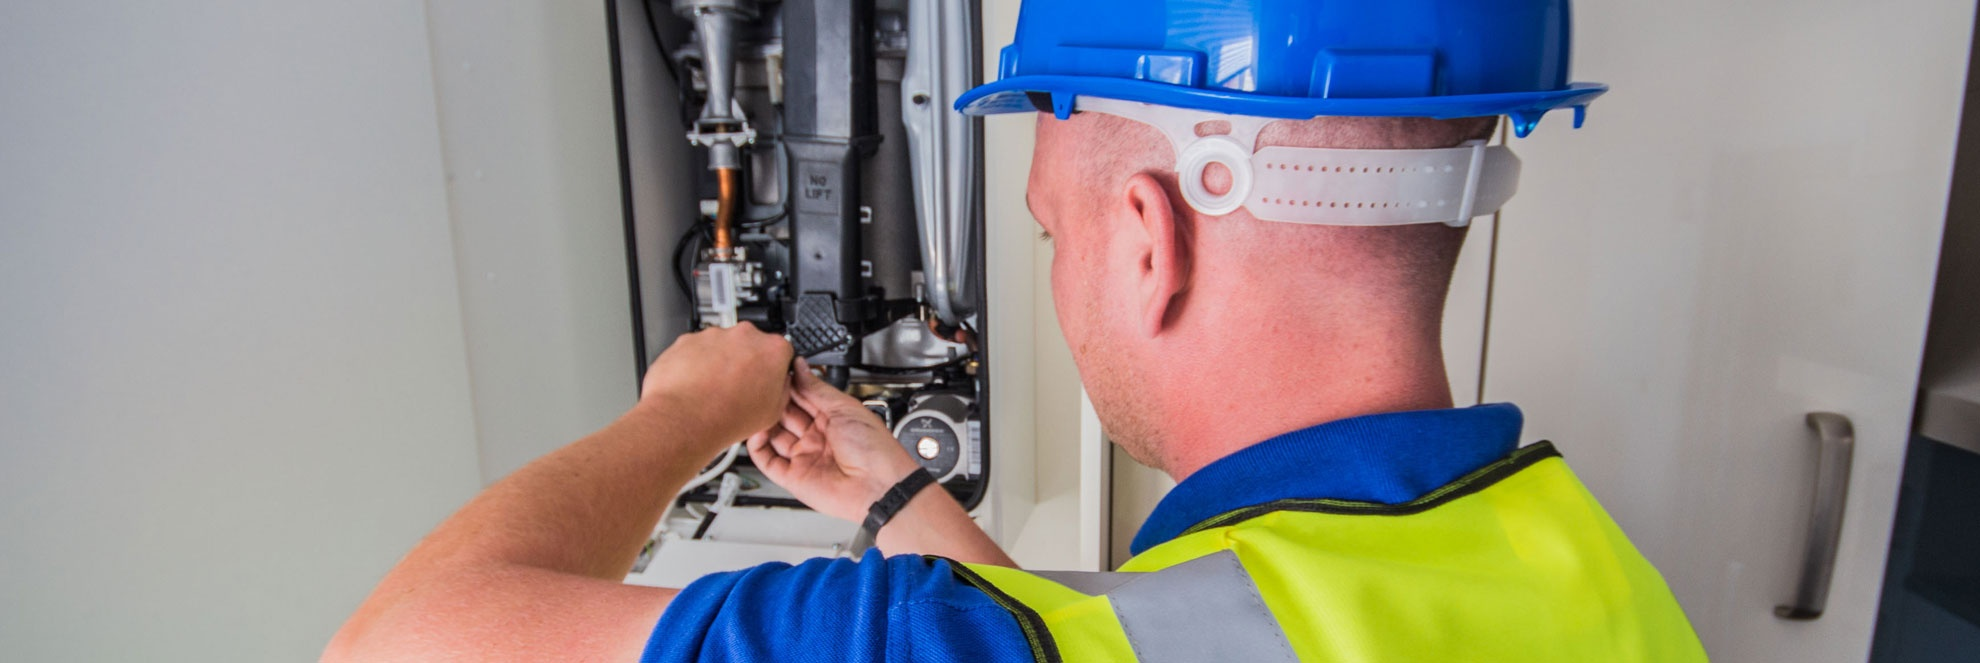 Boiler service and repair - Engineer repairing boiler